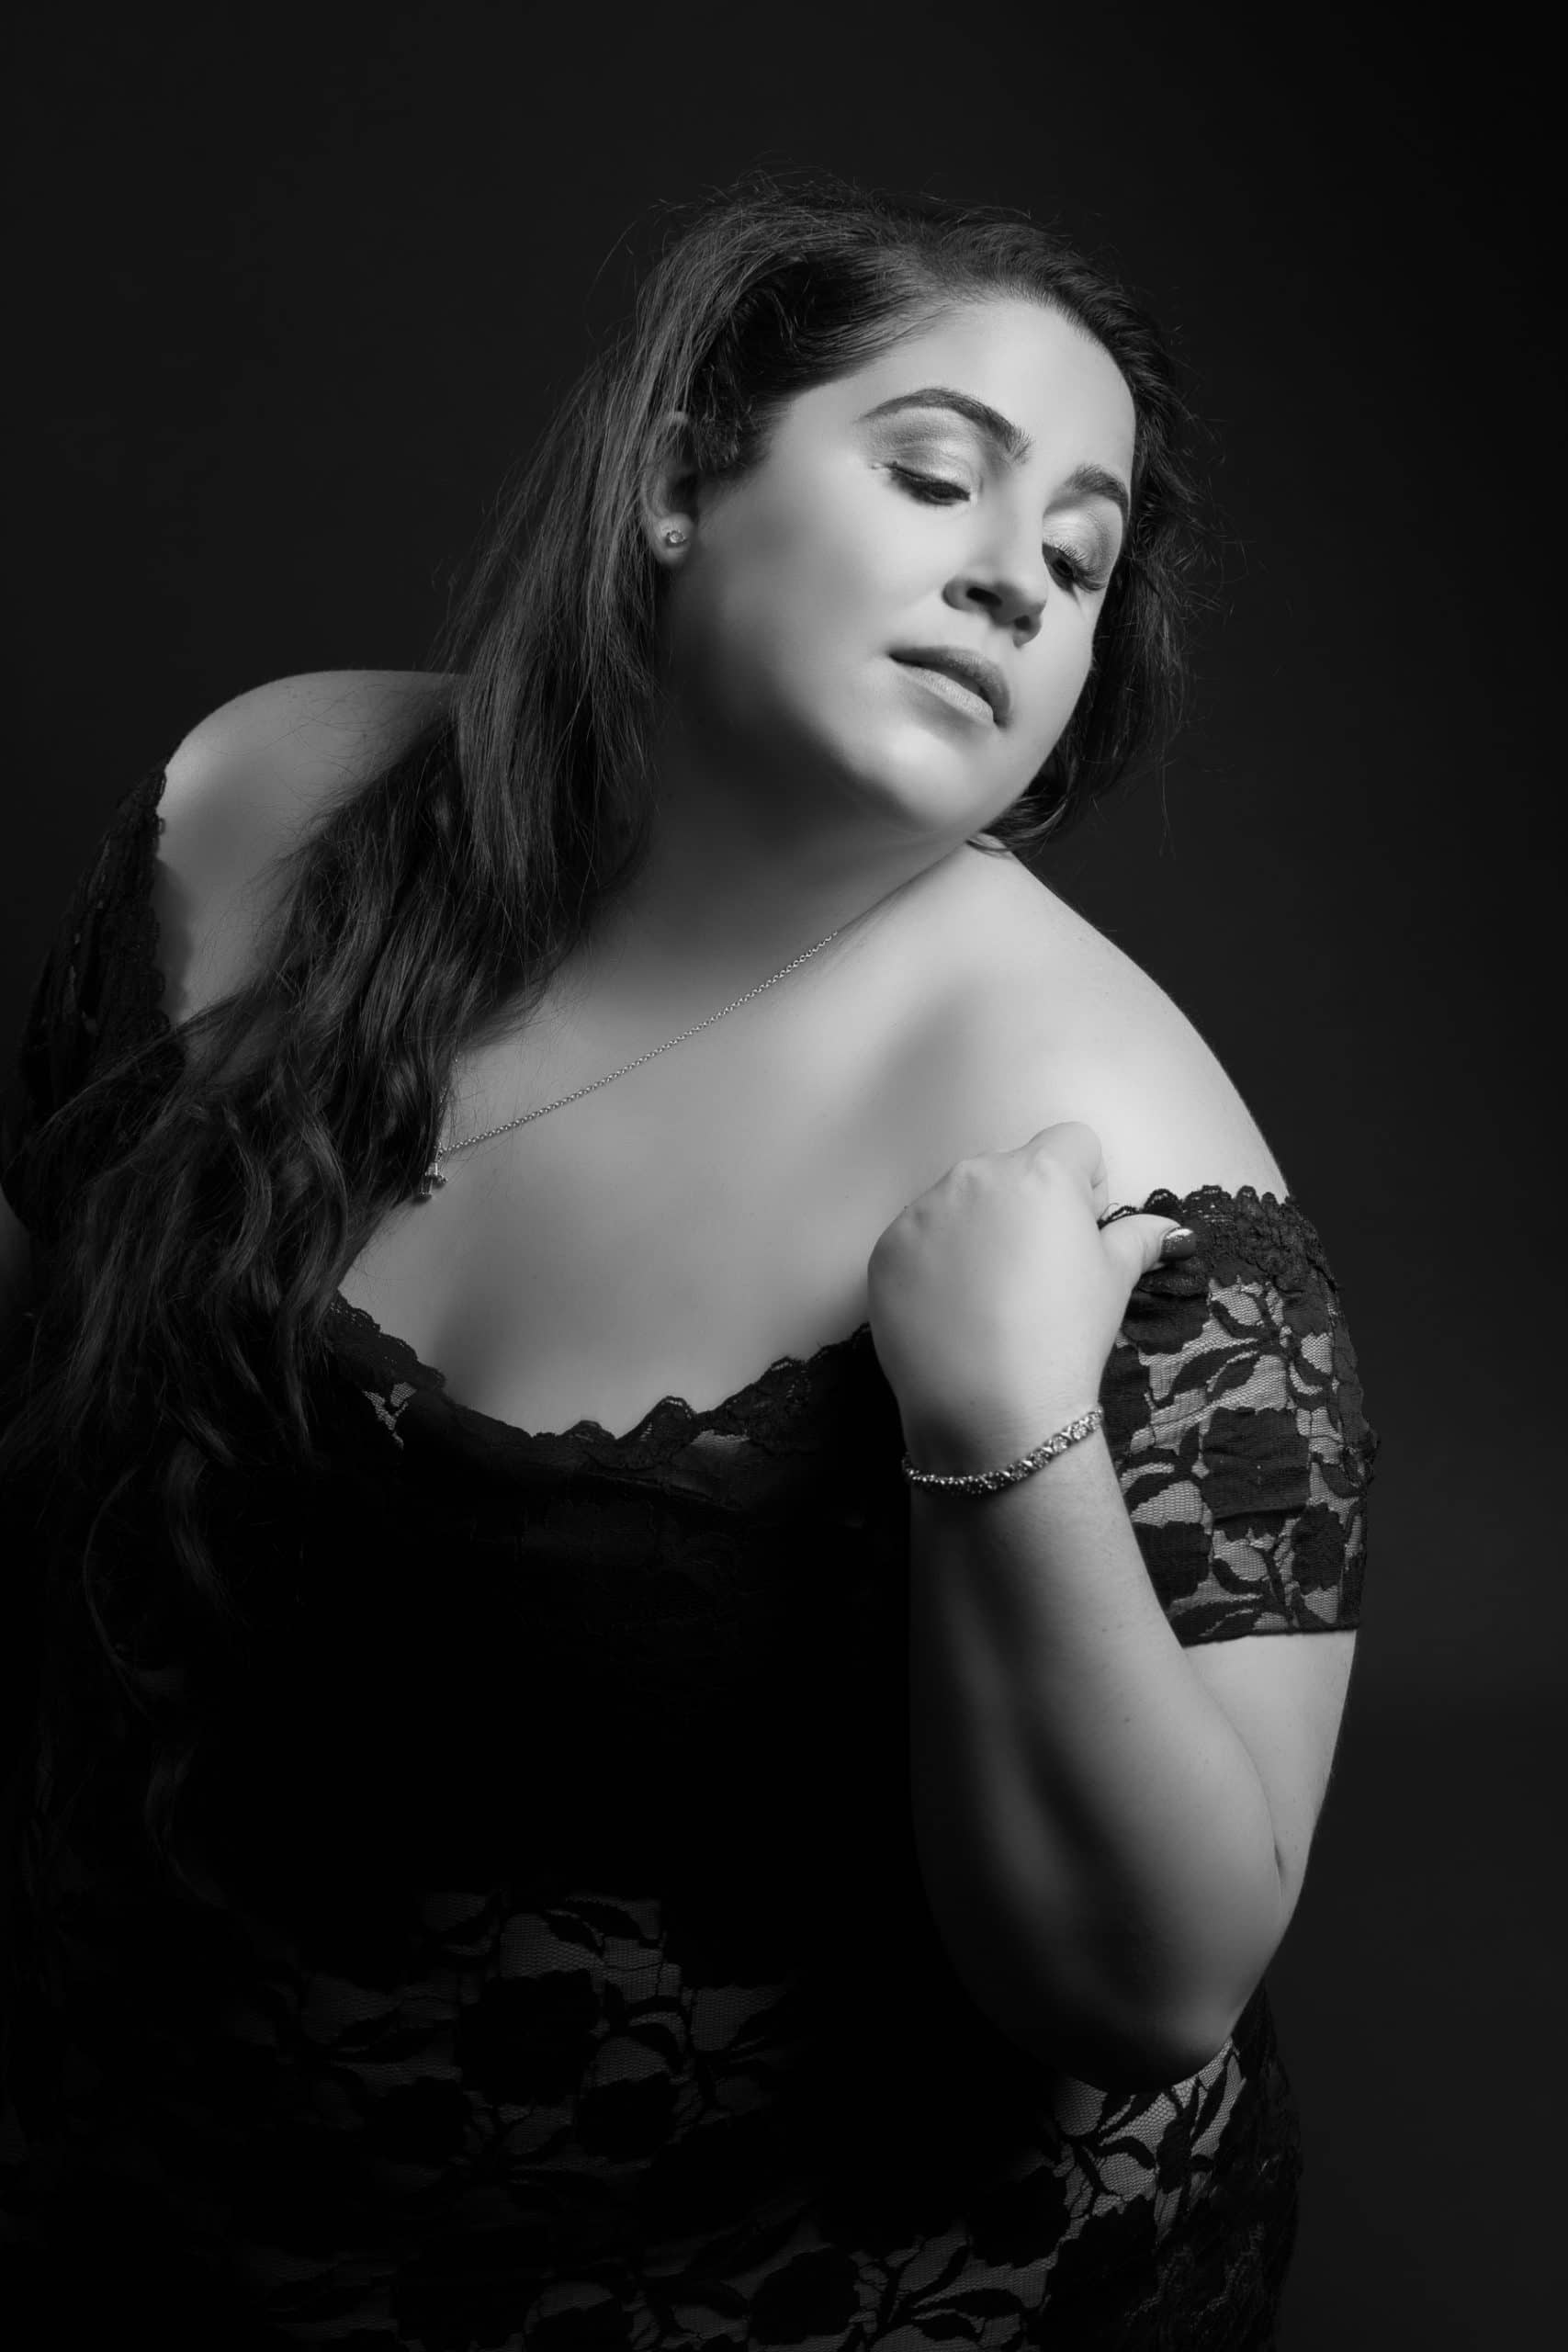 Black and white boudoir photoshoot of plus size women in black dress.